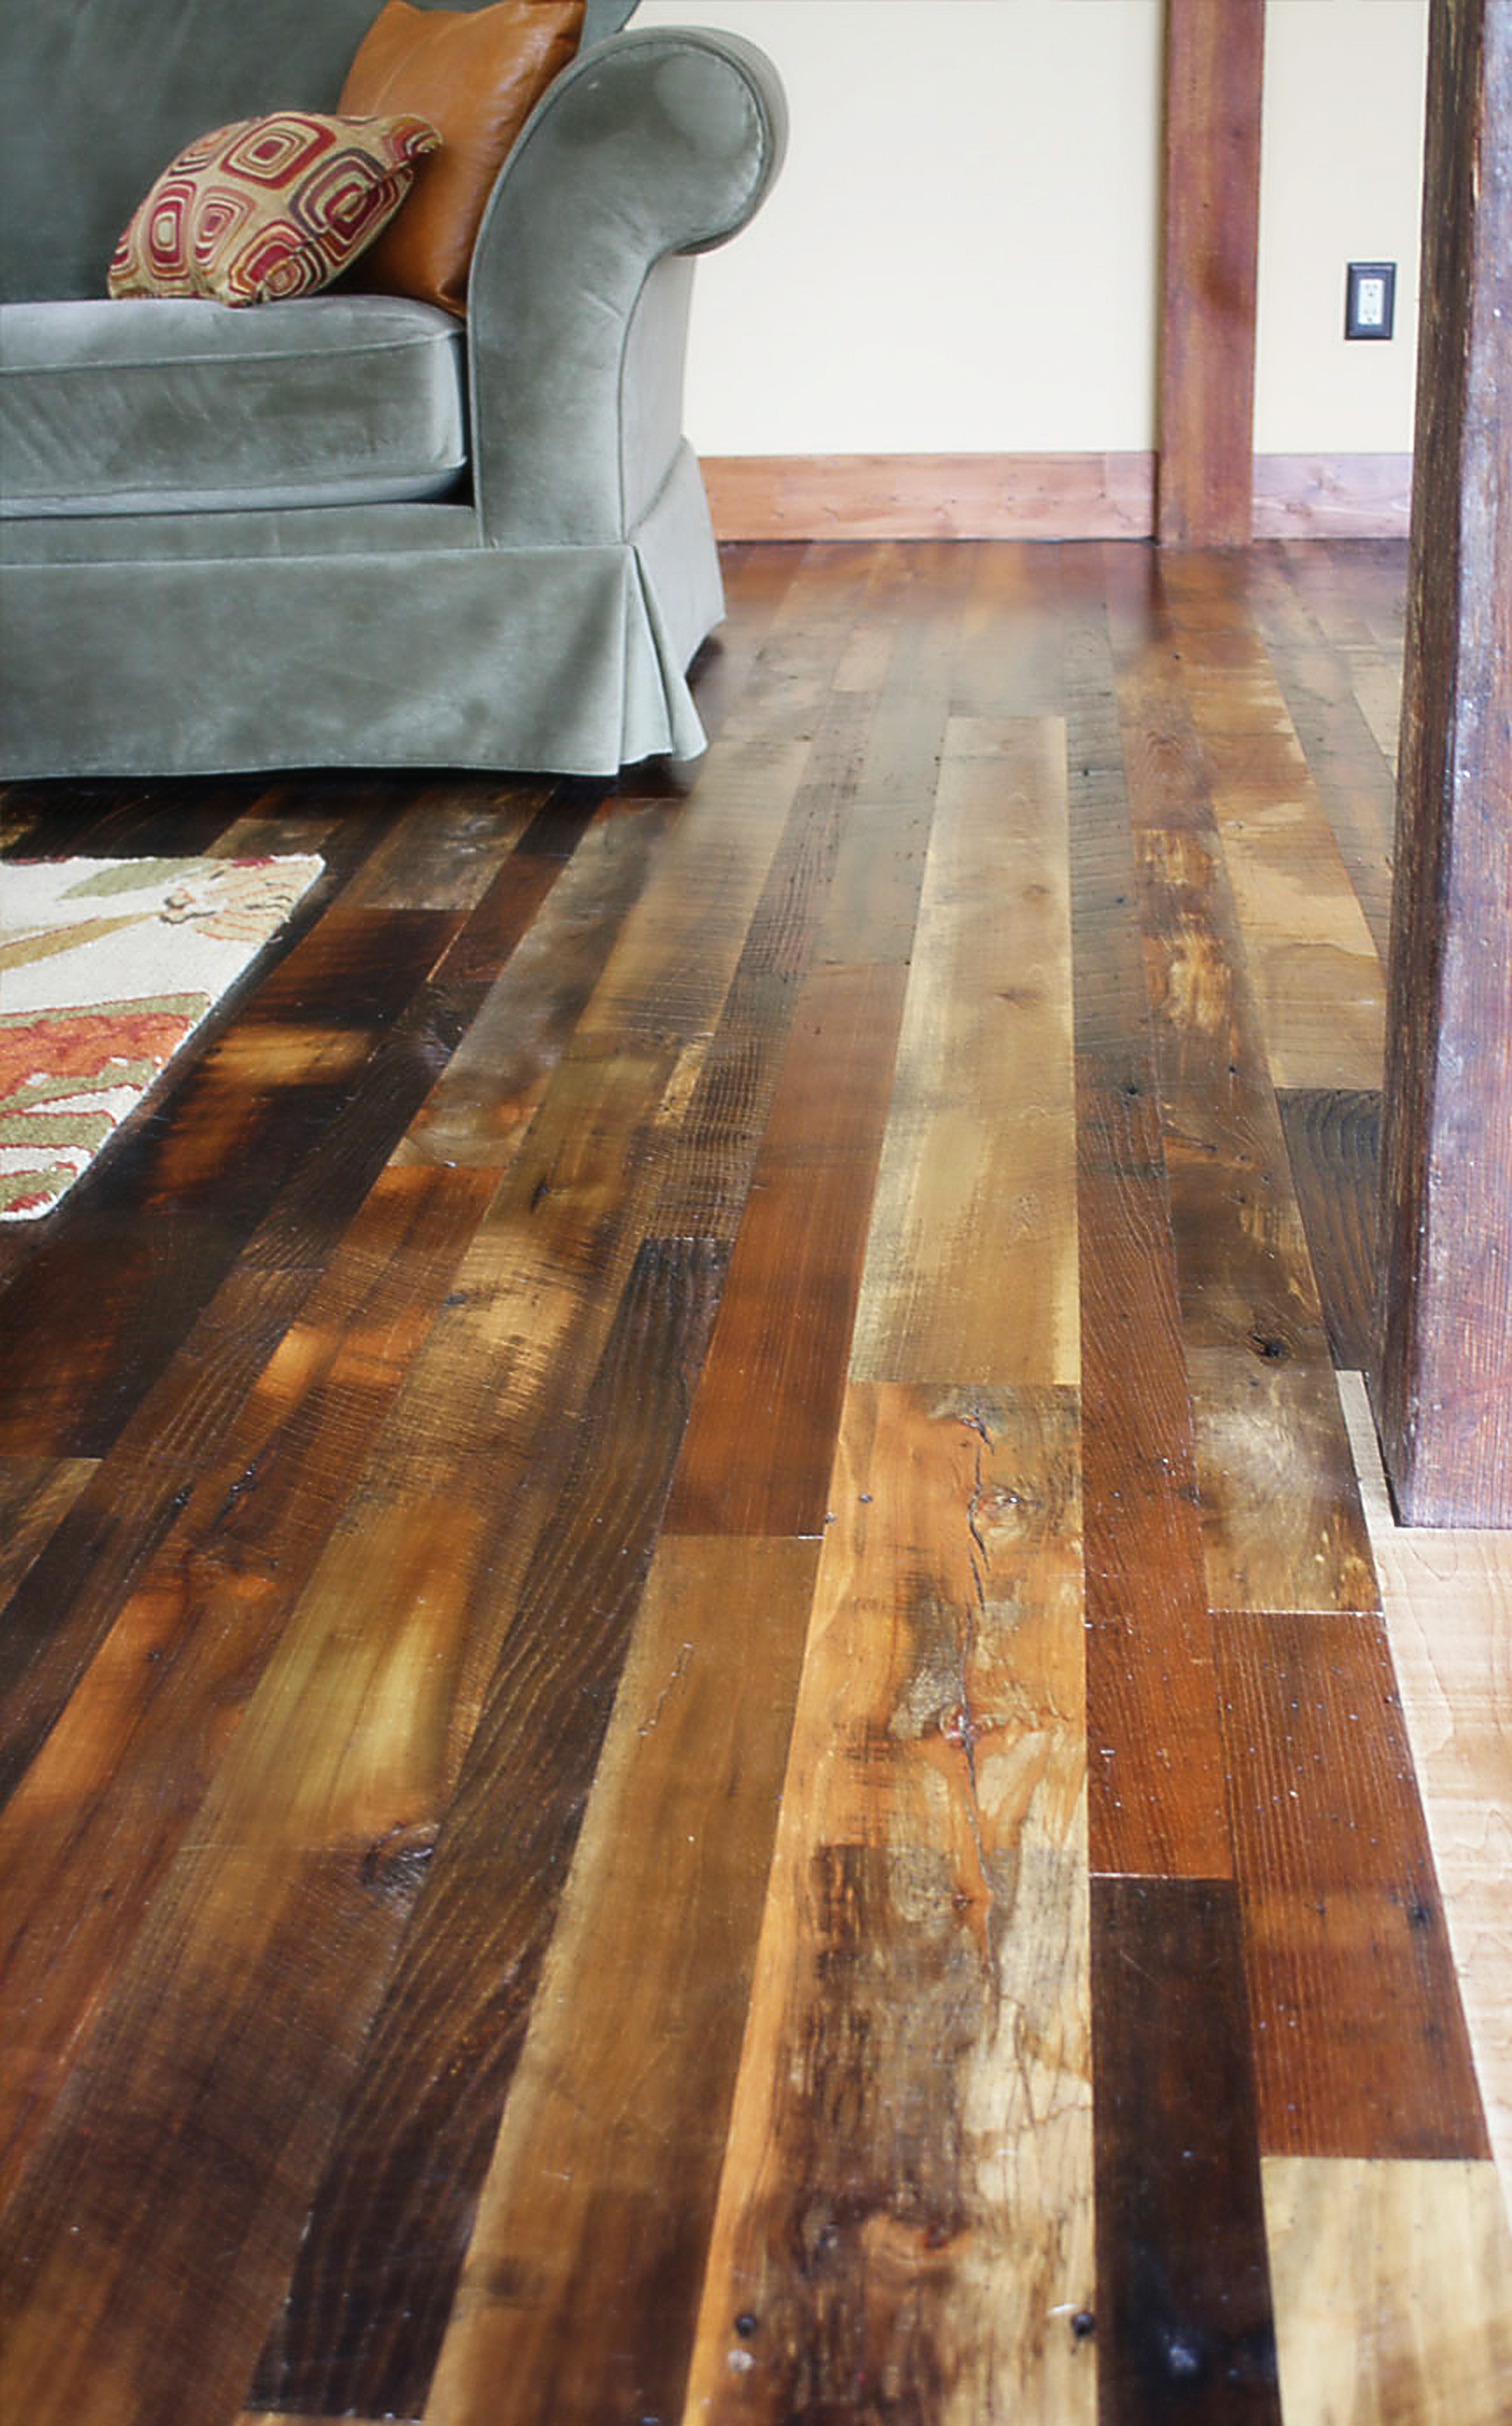 3 4 hardwood flooring of rustic hand scraped hardwood flooring sevenstonesinc com in attractive distressed rustic wood flooring for floor